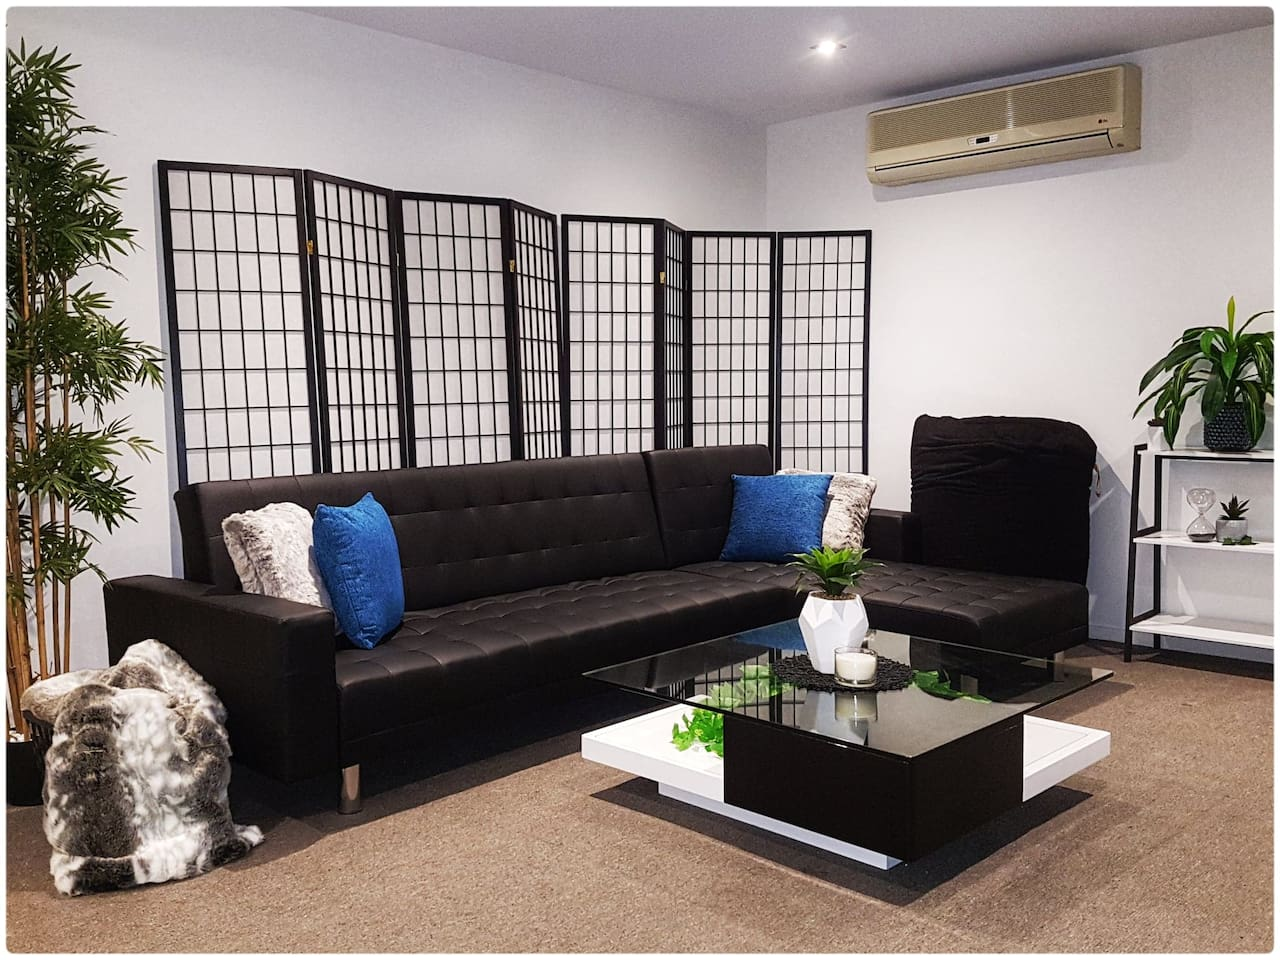 Brand new furnishings, expandable sofa bed, huge beanbag and large coffee table. The perfect place to relax after a fun day in Melbourne.